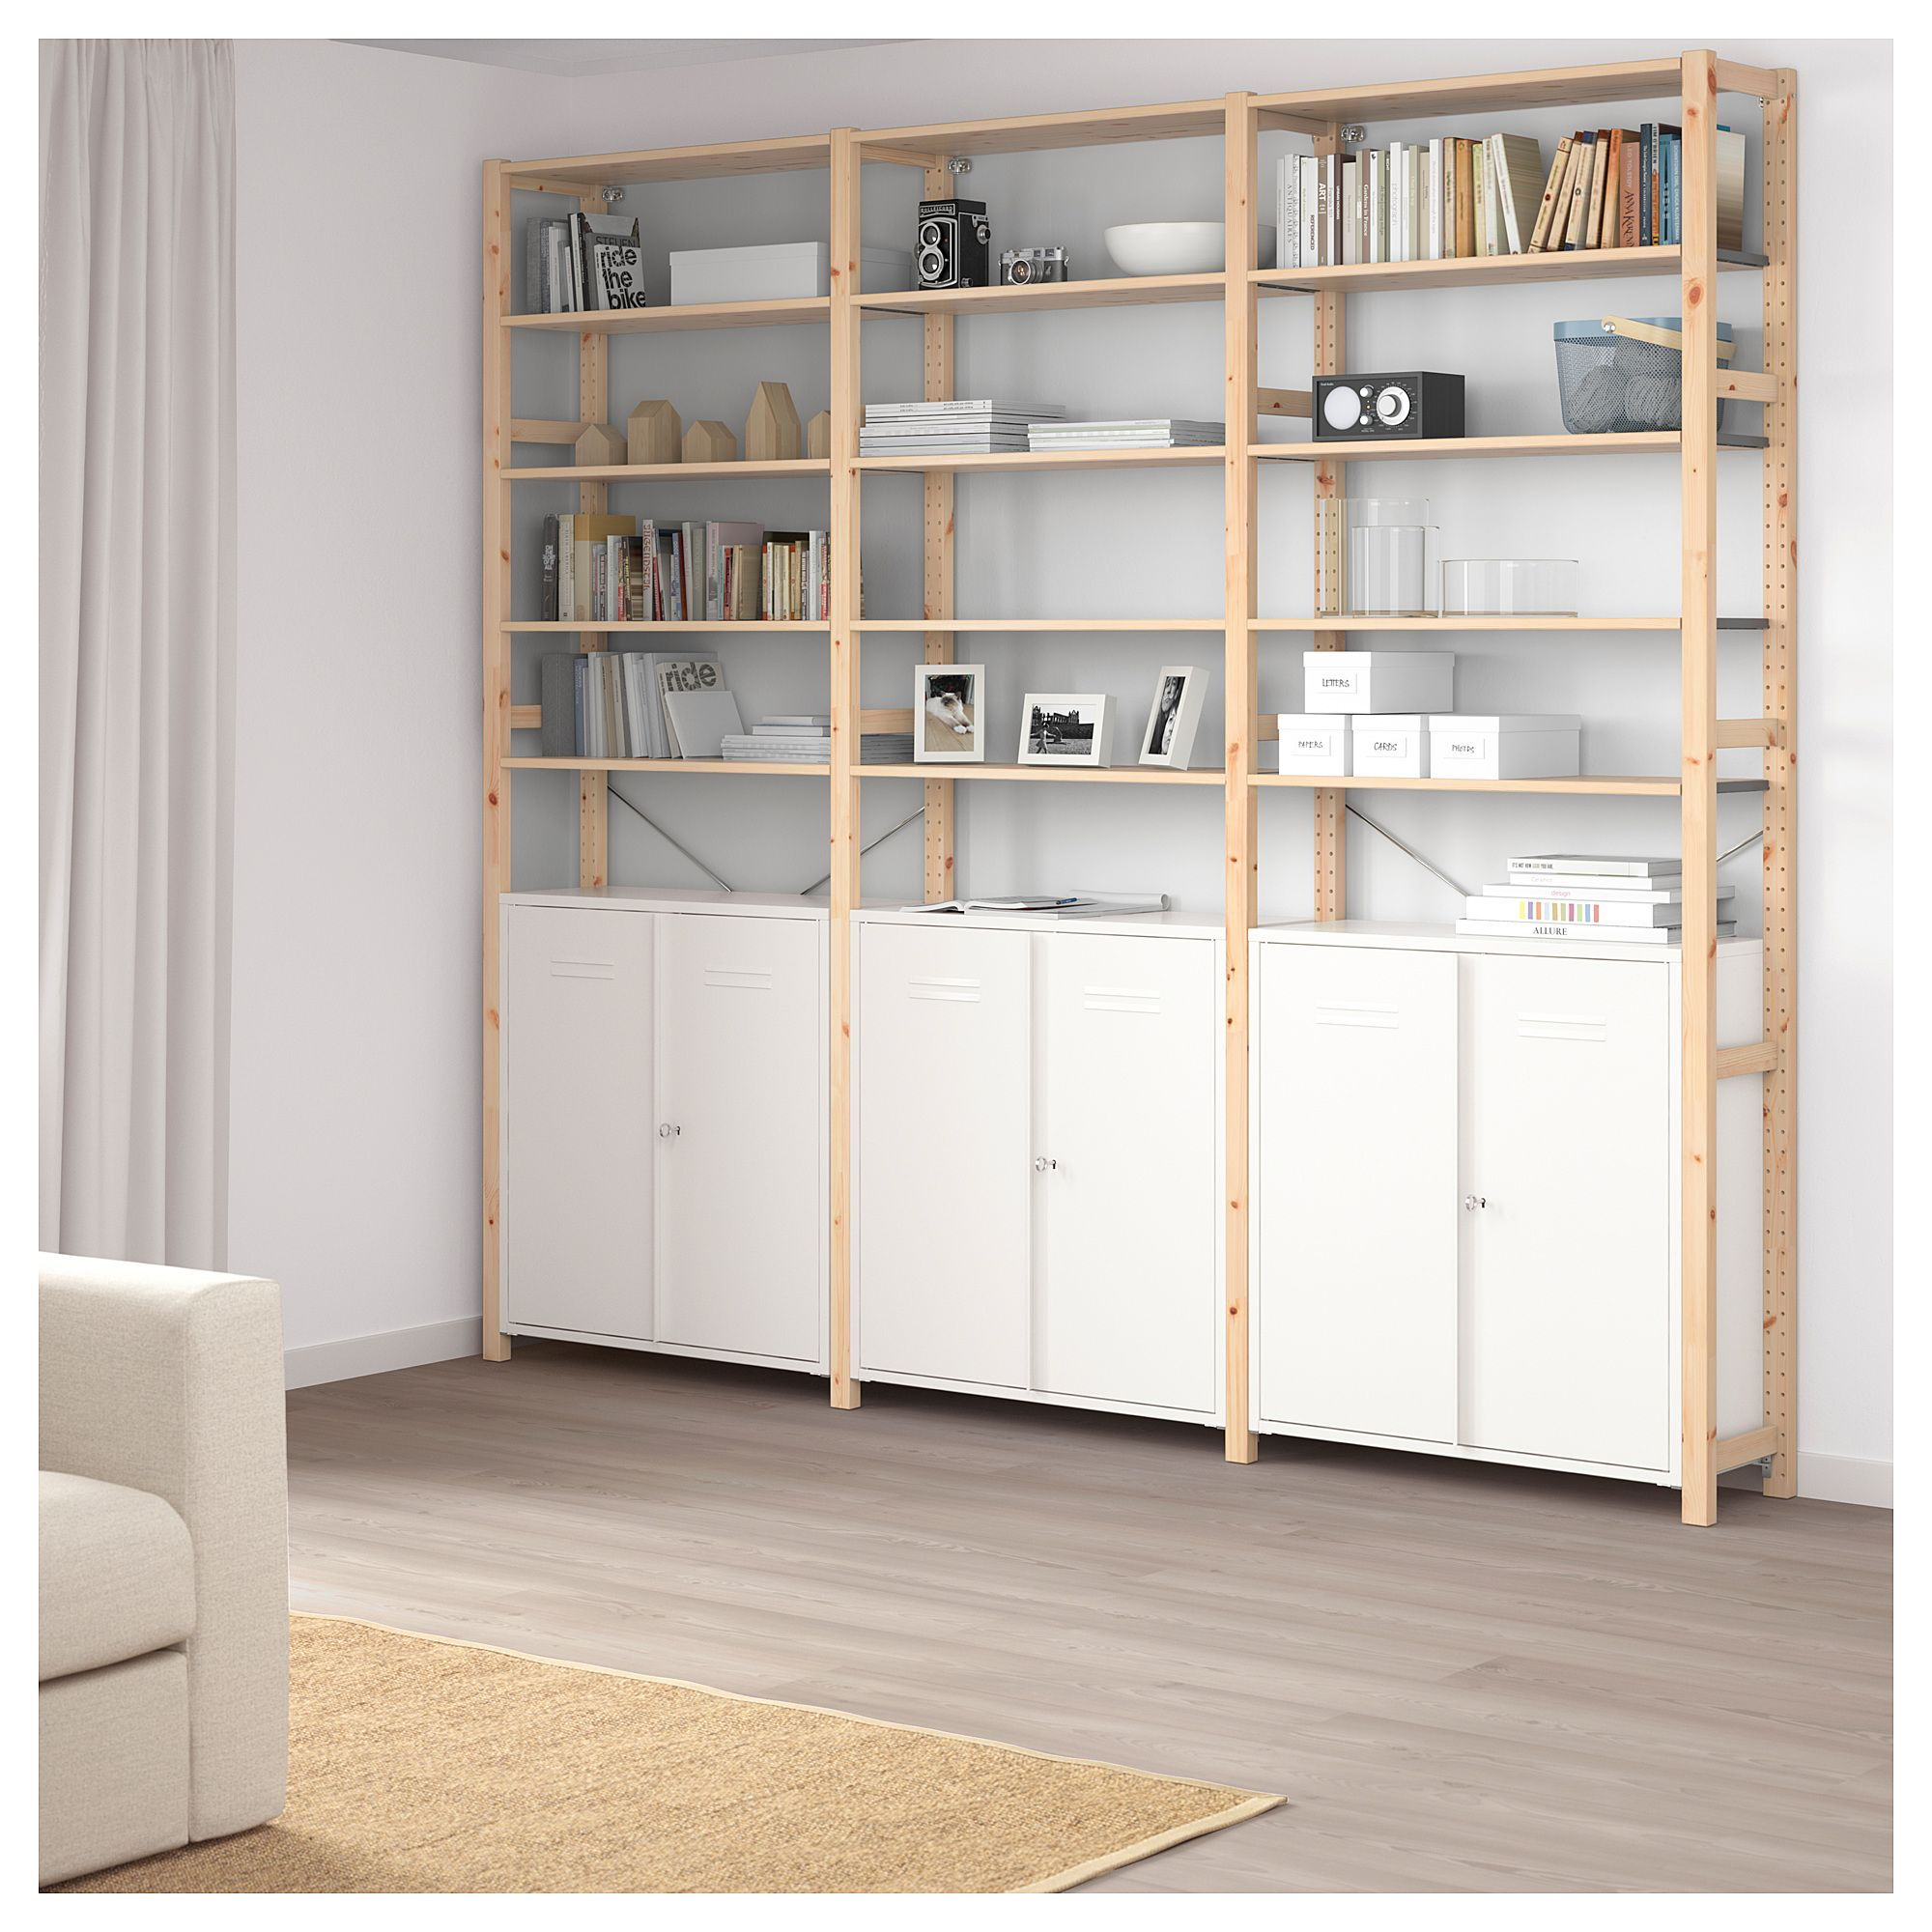 the best attitude 99baf f3179 IVAR 3 sections/cabinet/shelves - pine, white | Products in ...